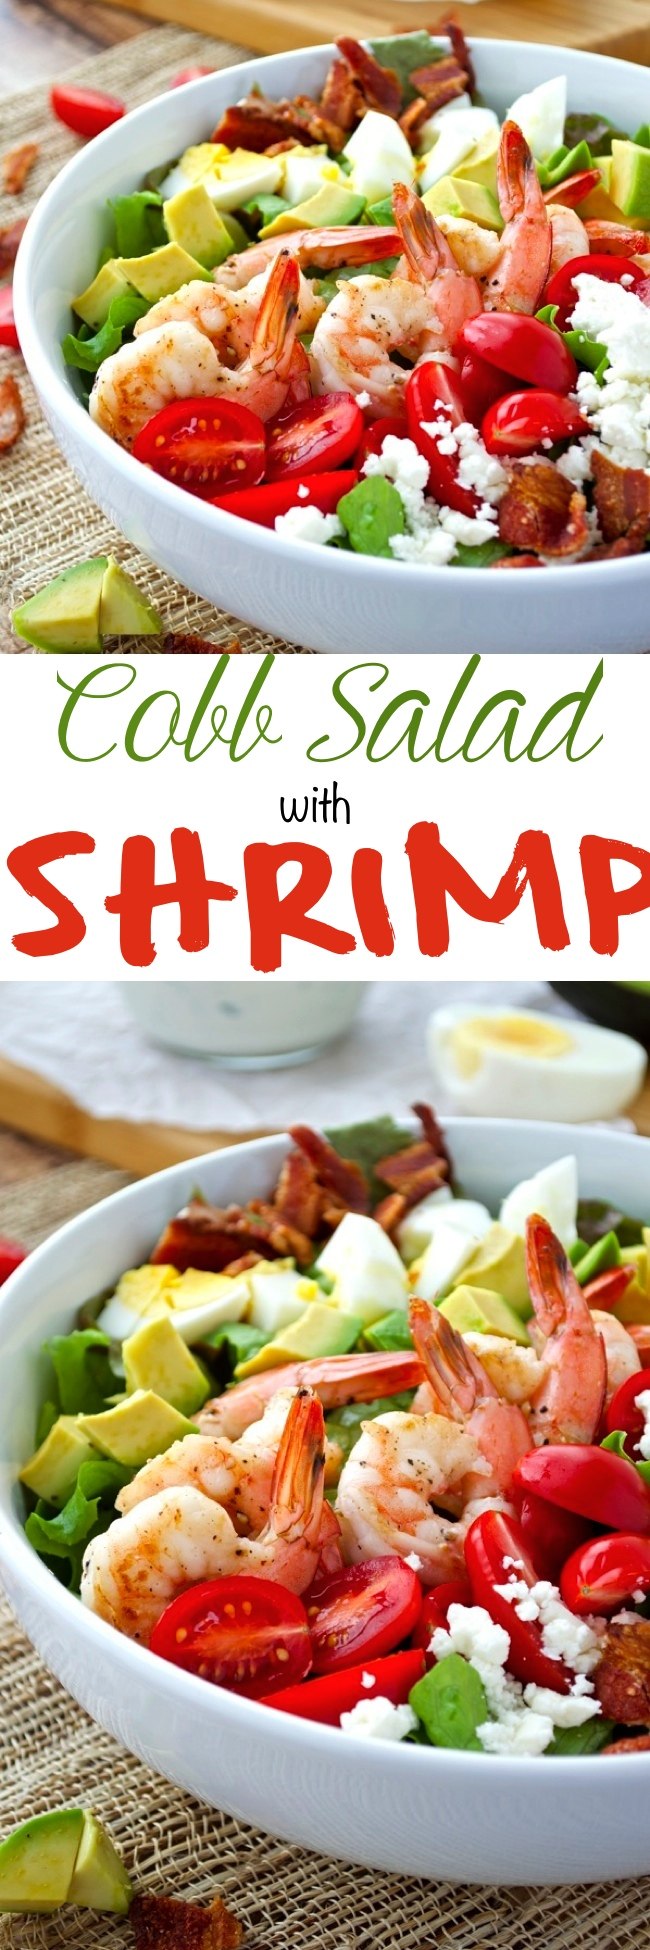 Cobb Salad with Shrimp Pin